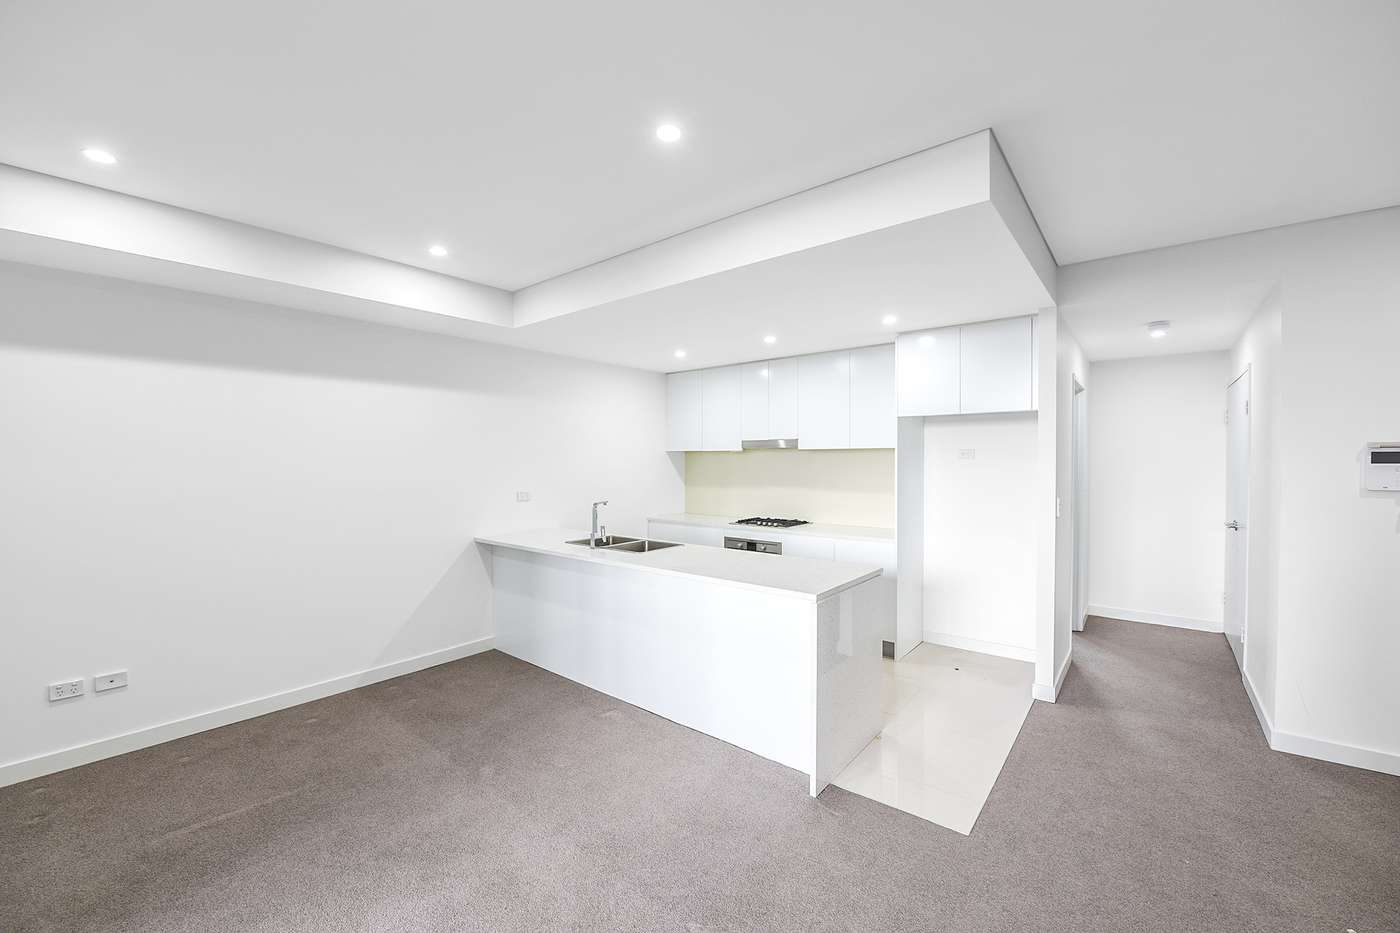 Main view of Homely apartment listing, 16/235 Homebush Road, Strathfield, NSW 2135